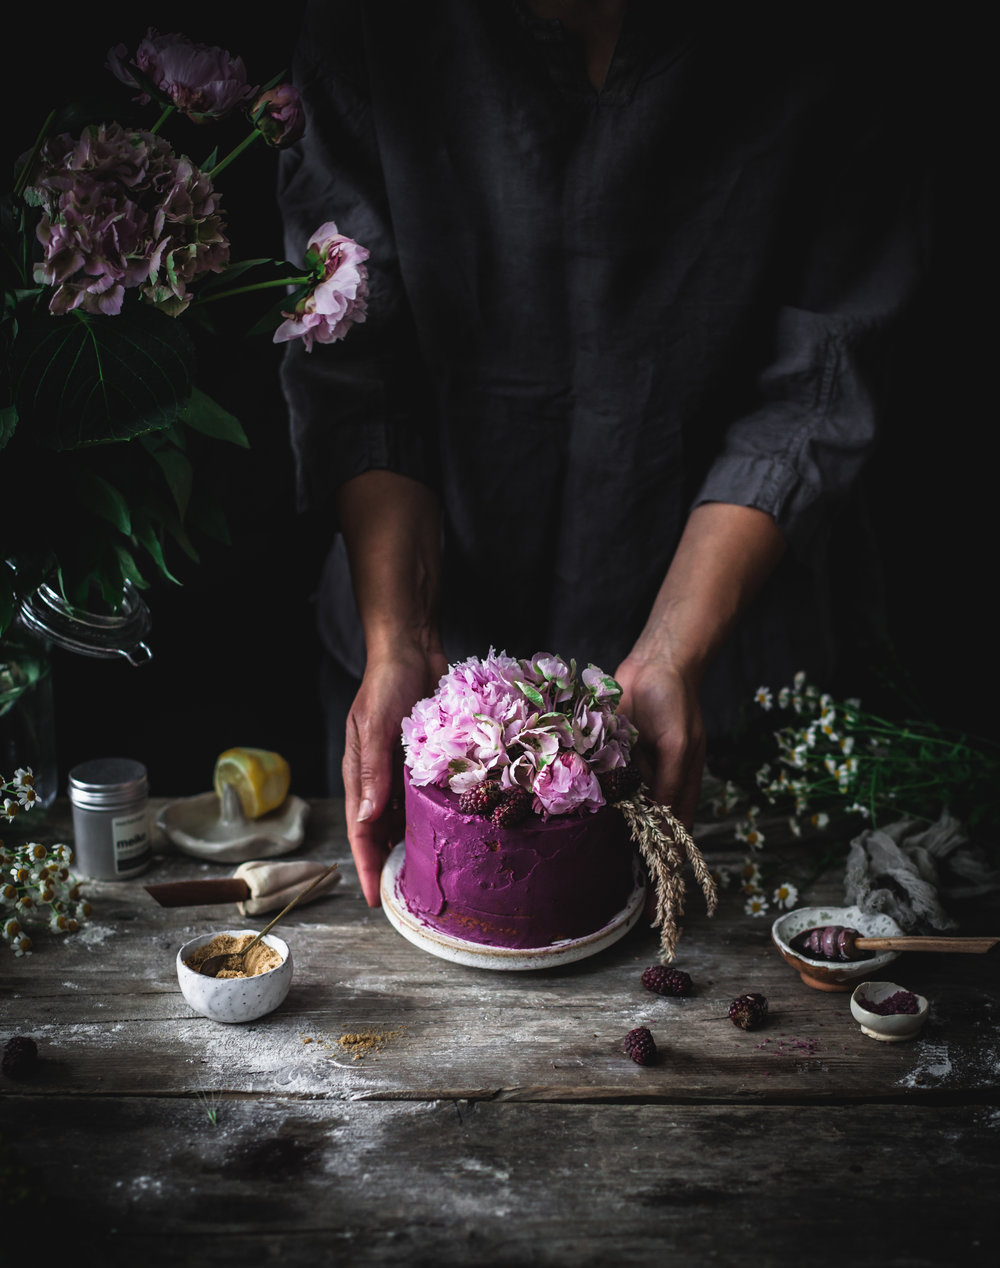 purple potatoes & white chocolate cake